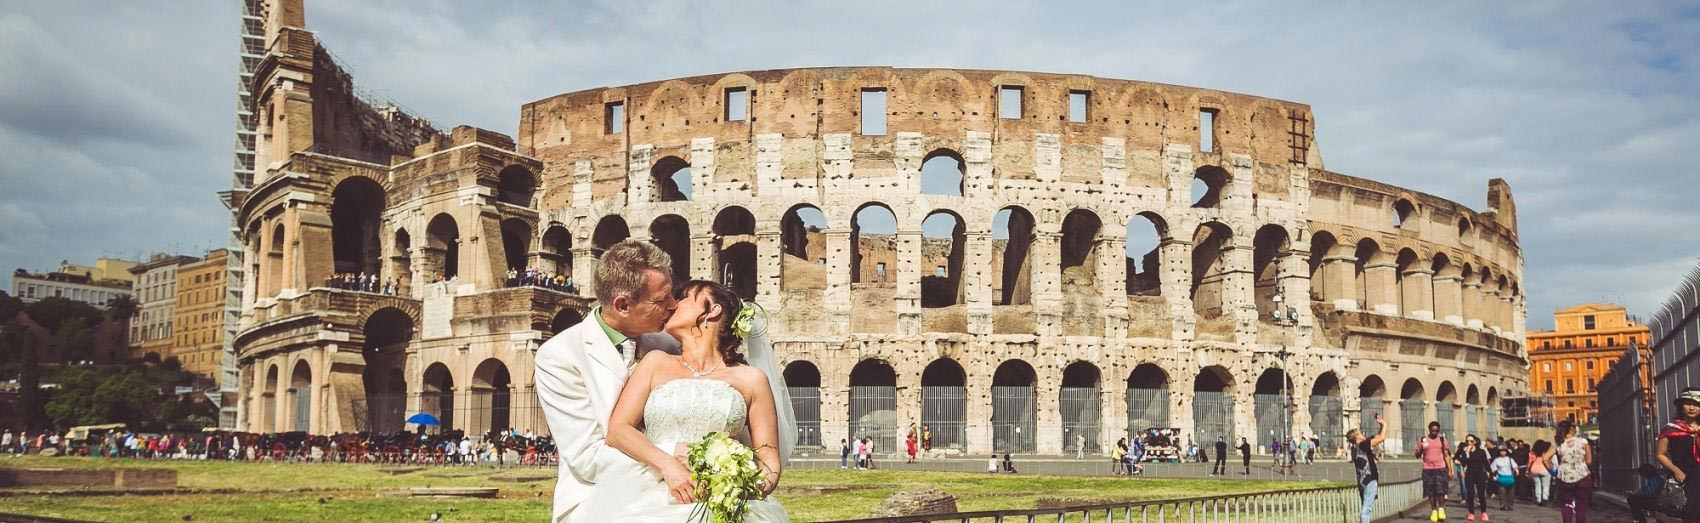 weddings-in-italy120